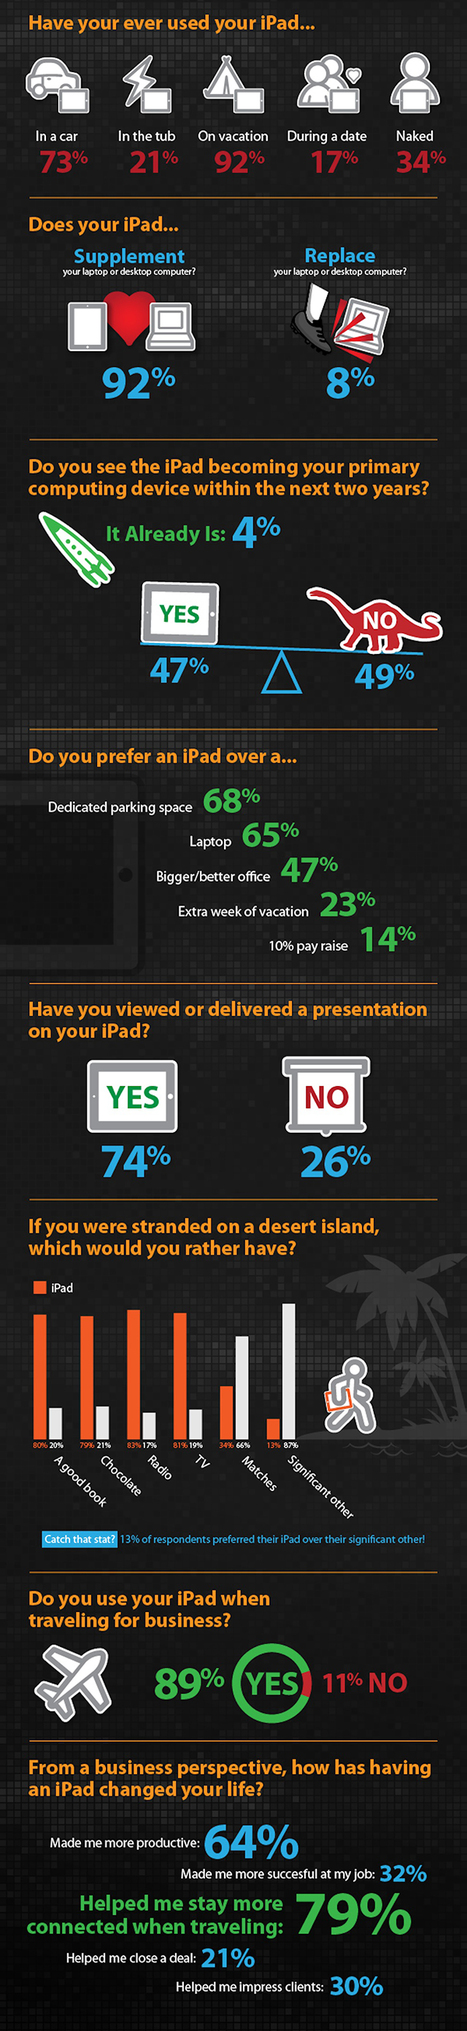 These Business Travelers Would Sacrifice a Lot For Their iPads [INFOGRAPHIC] | IPAD, un nuevo concepto socio-educativo! | Scoop.it